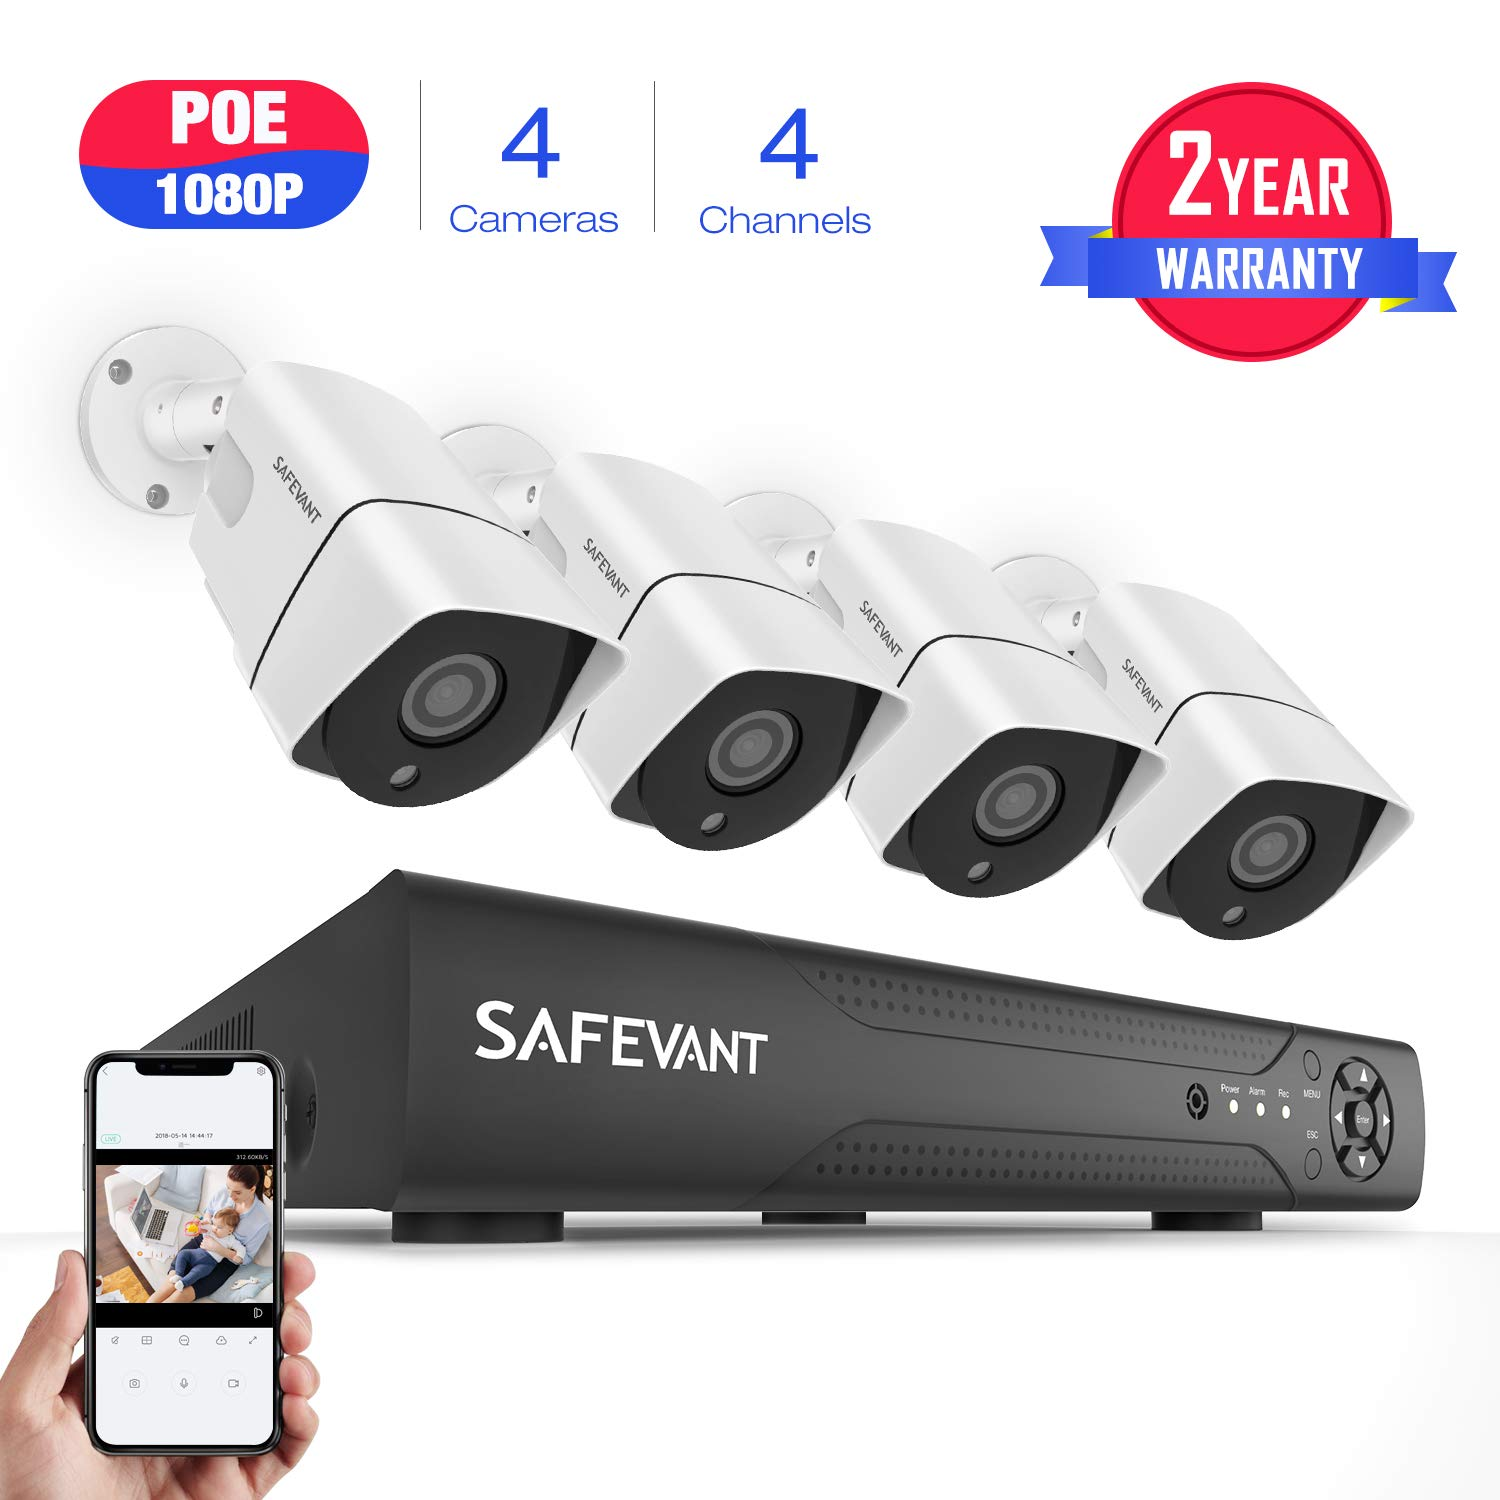 SAFEVANT 1080P PoE Security Camera System Outdoor Without Hard Drive, 4pcs 2MP Indoor Home Cameras with Night Vision